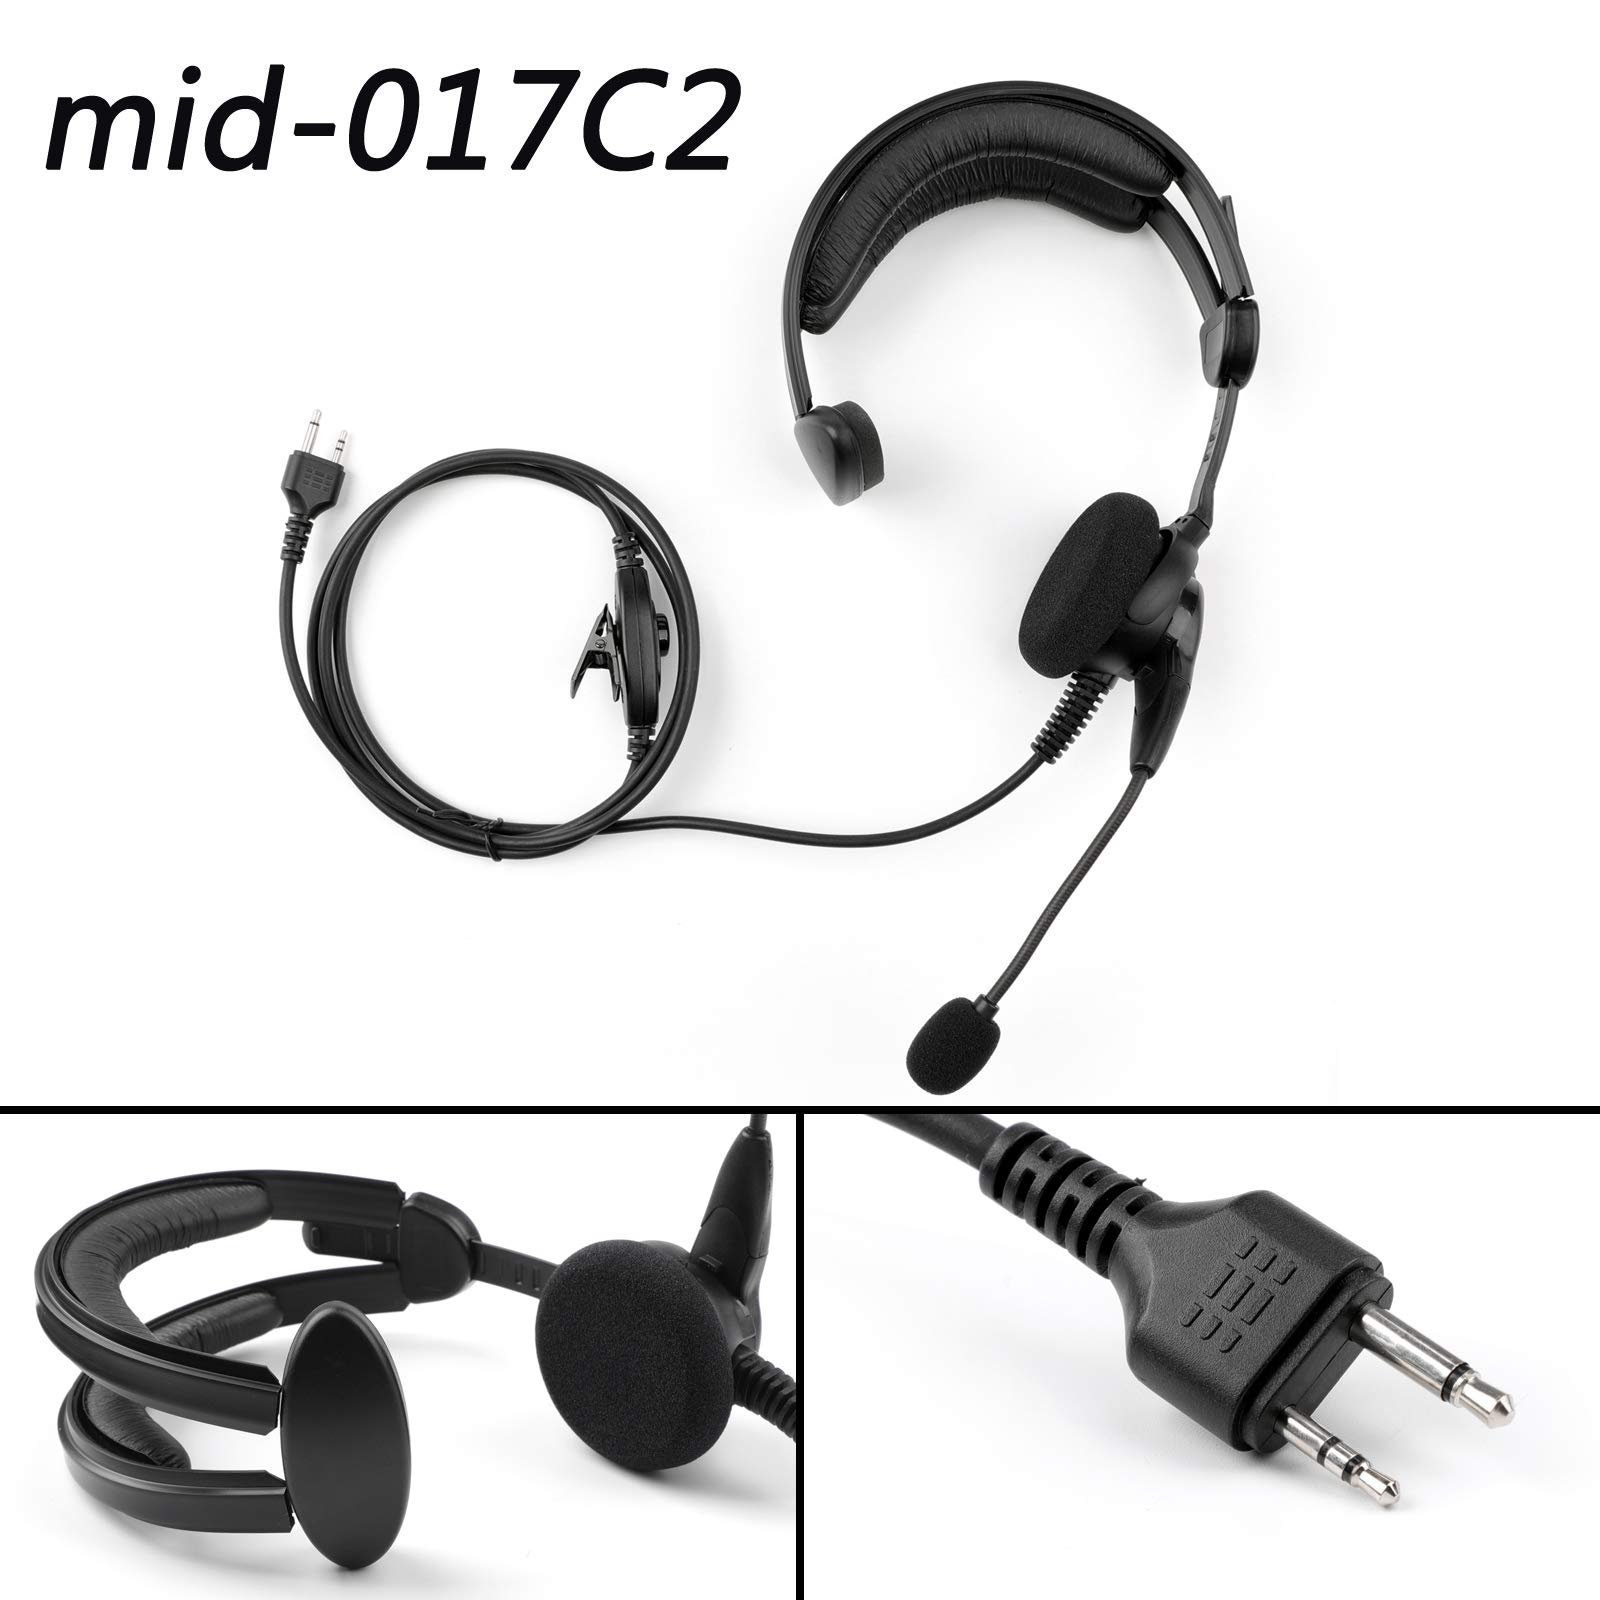 Artudatech 1PCS Over-The-Head Earpiece Headset Mid-017C2 Microphone Noise Cancelling